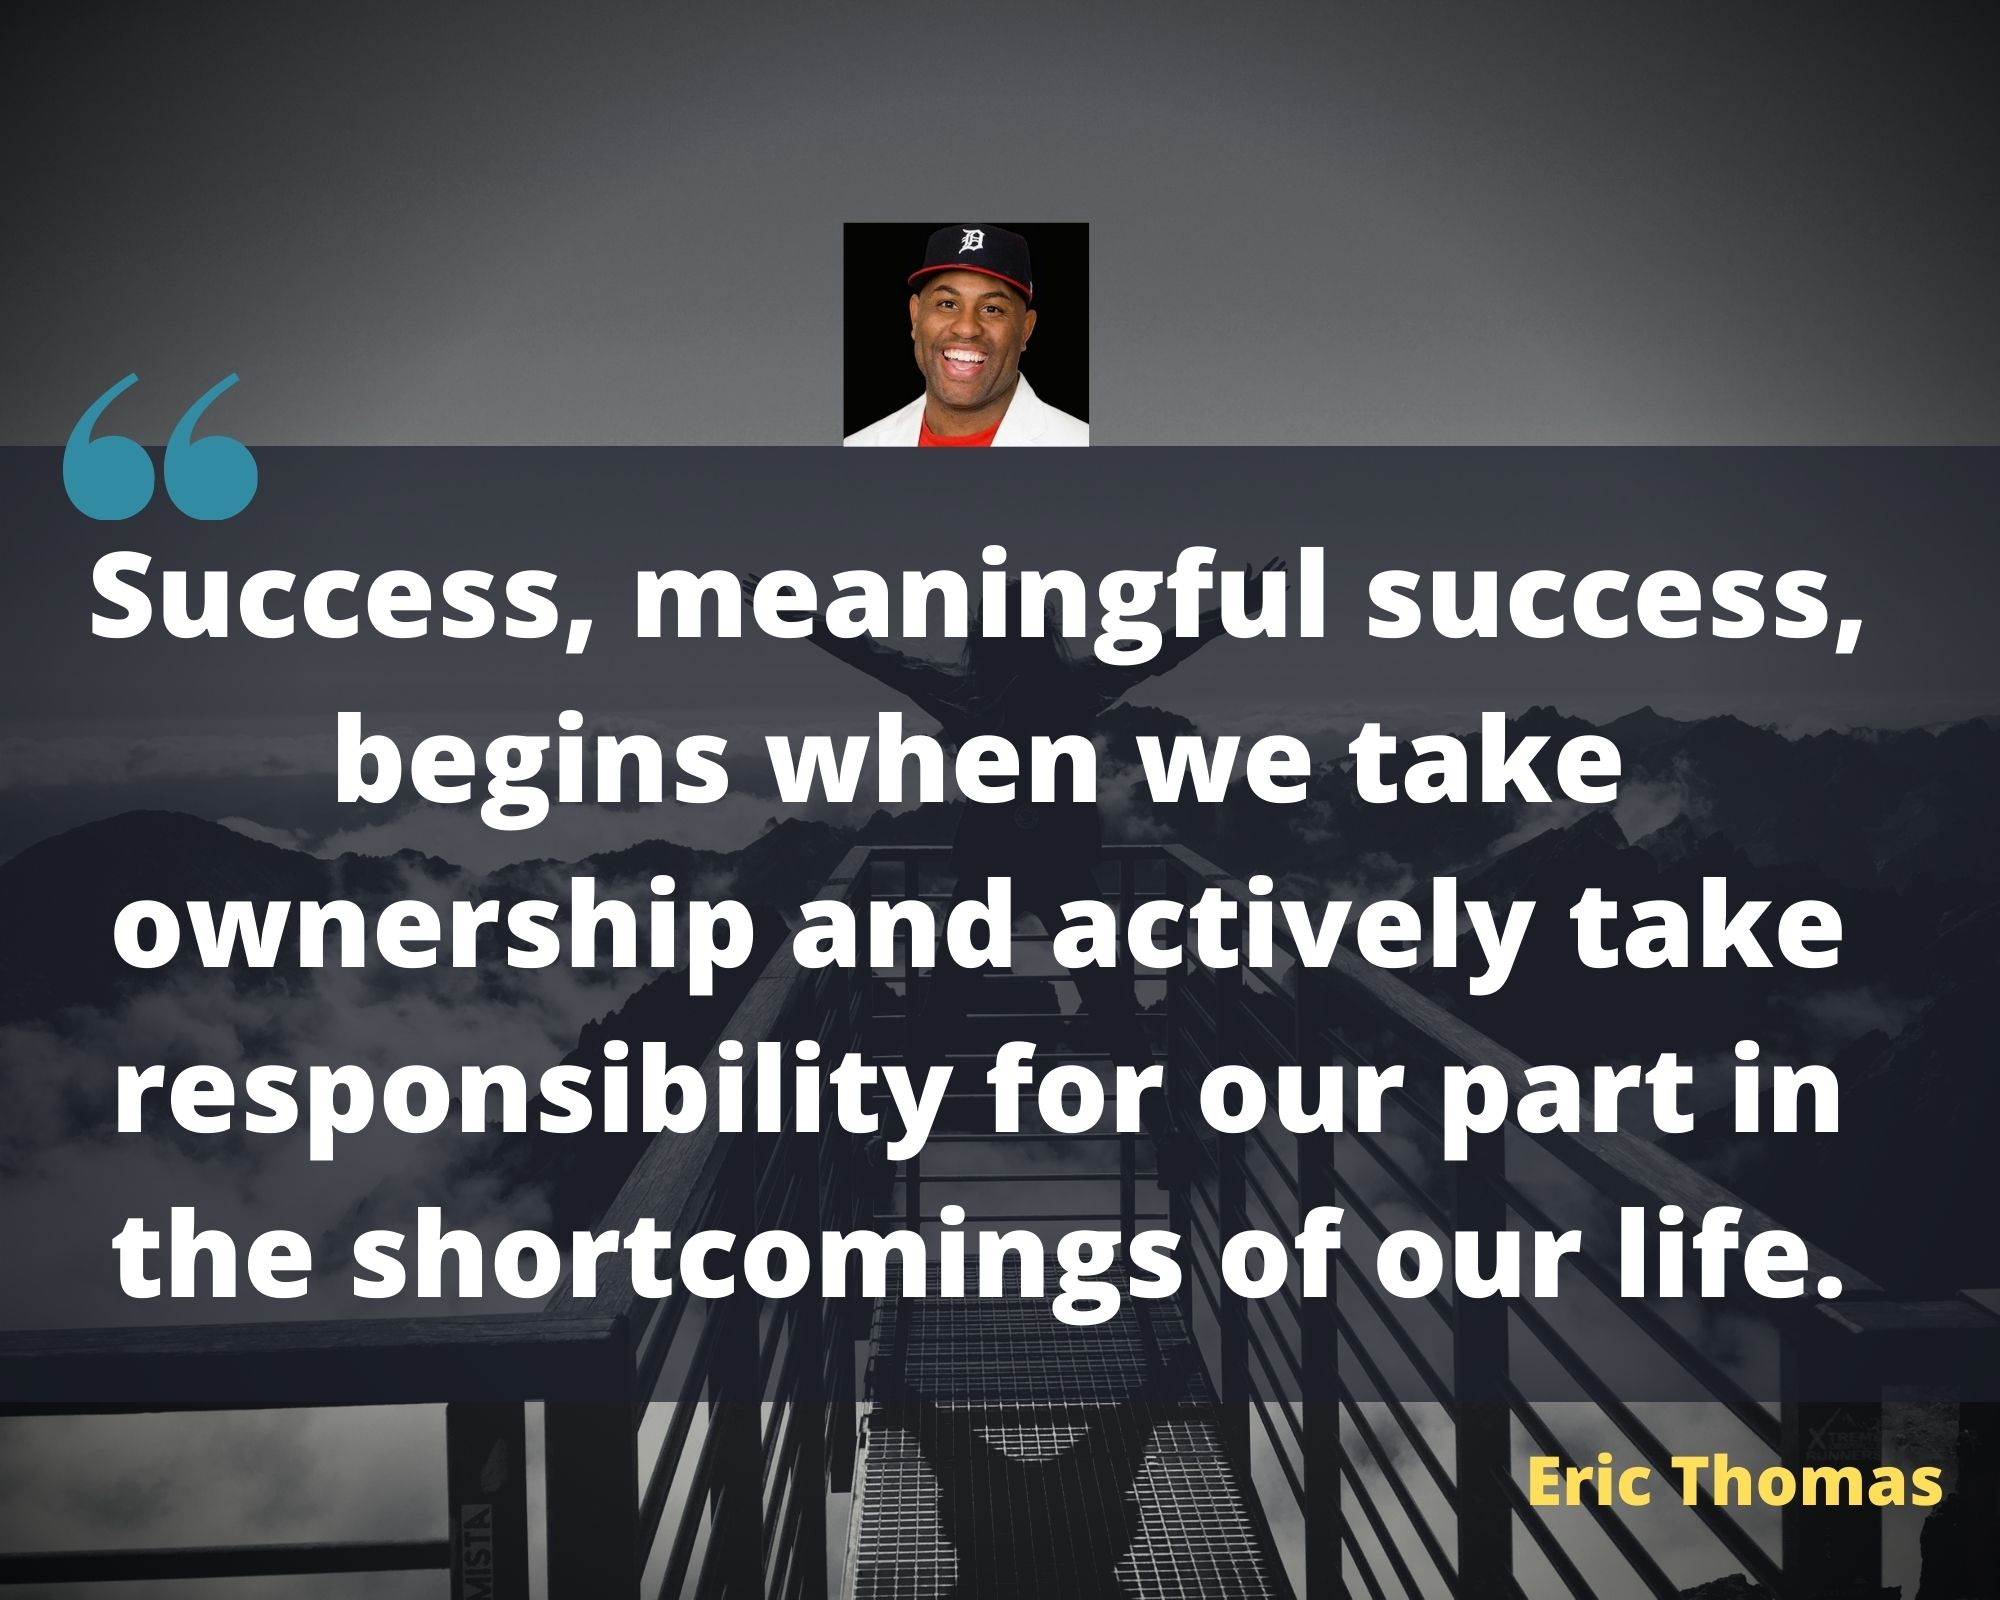 eric thomas quotes about success